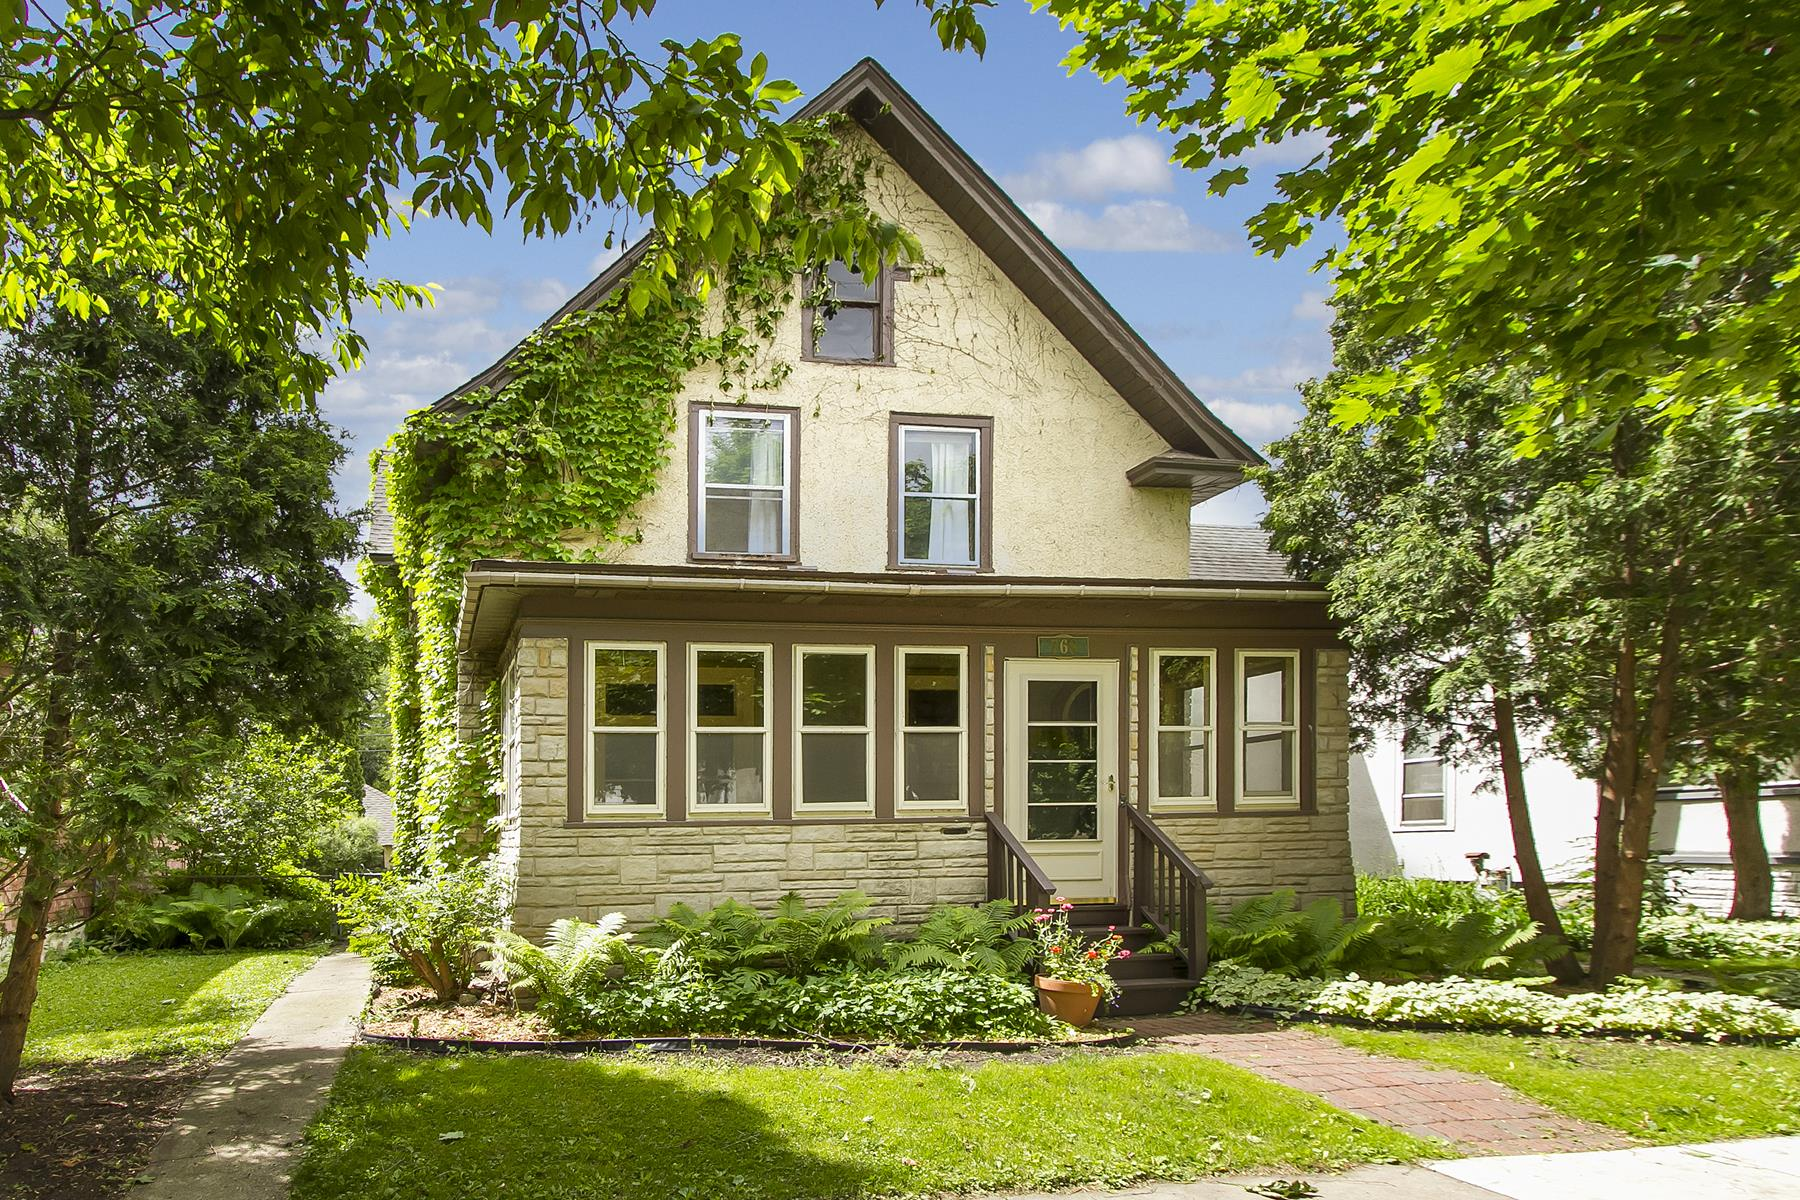 Maison unifamiliale pour l Vente à 768 James Avenue St. Paul, Minnesota, 55102 États-Unis